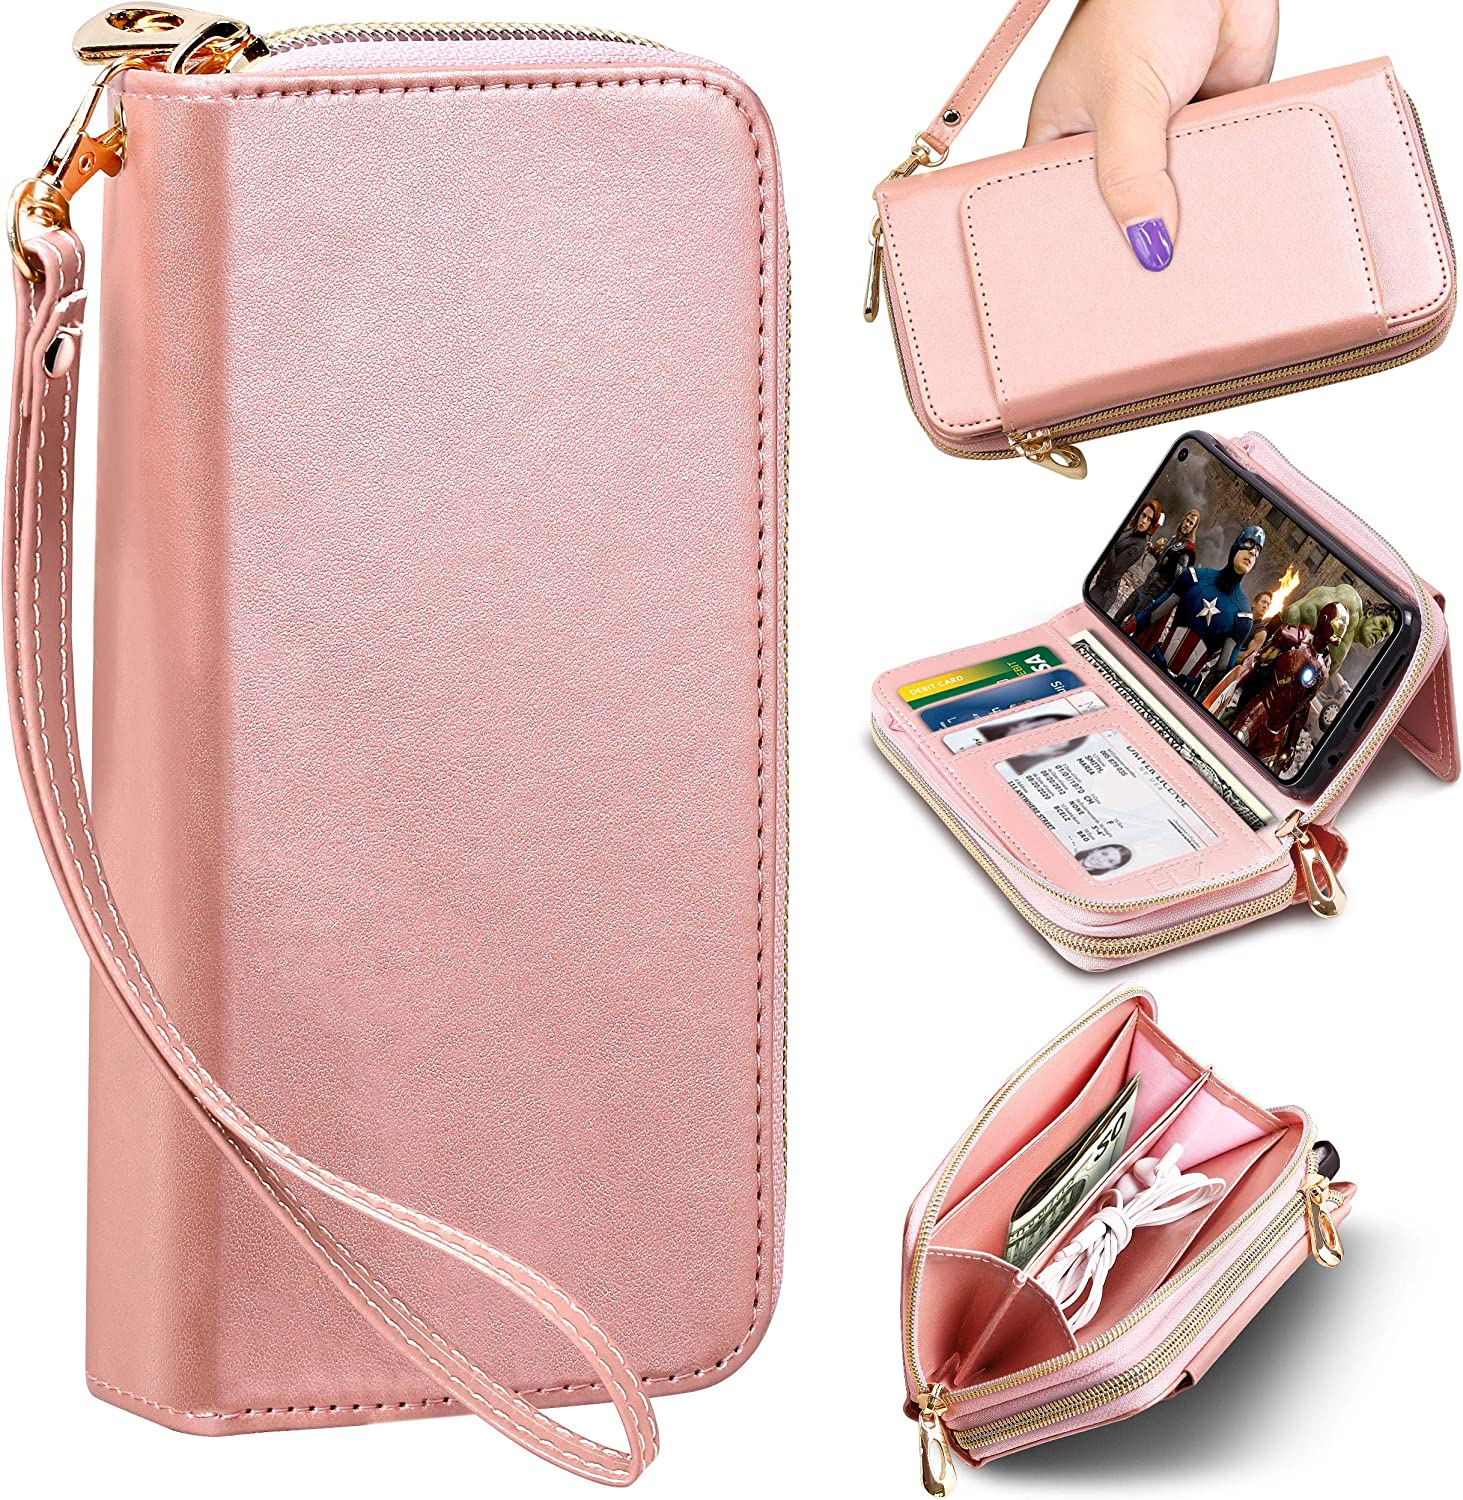 E LV PU Vegan Leather Handcrafted Wallet Purse Case for Galaxy S10E, Flip Folio Case with (Kickstand Function) and (Card Slots) for Galaxy S10E (Rose Gold, Samsung S10E)